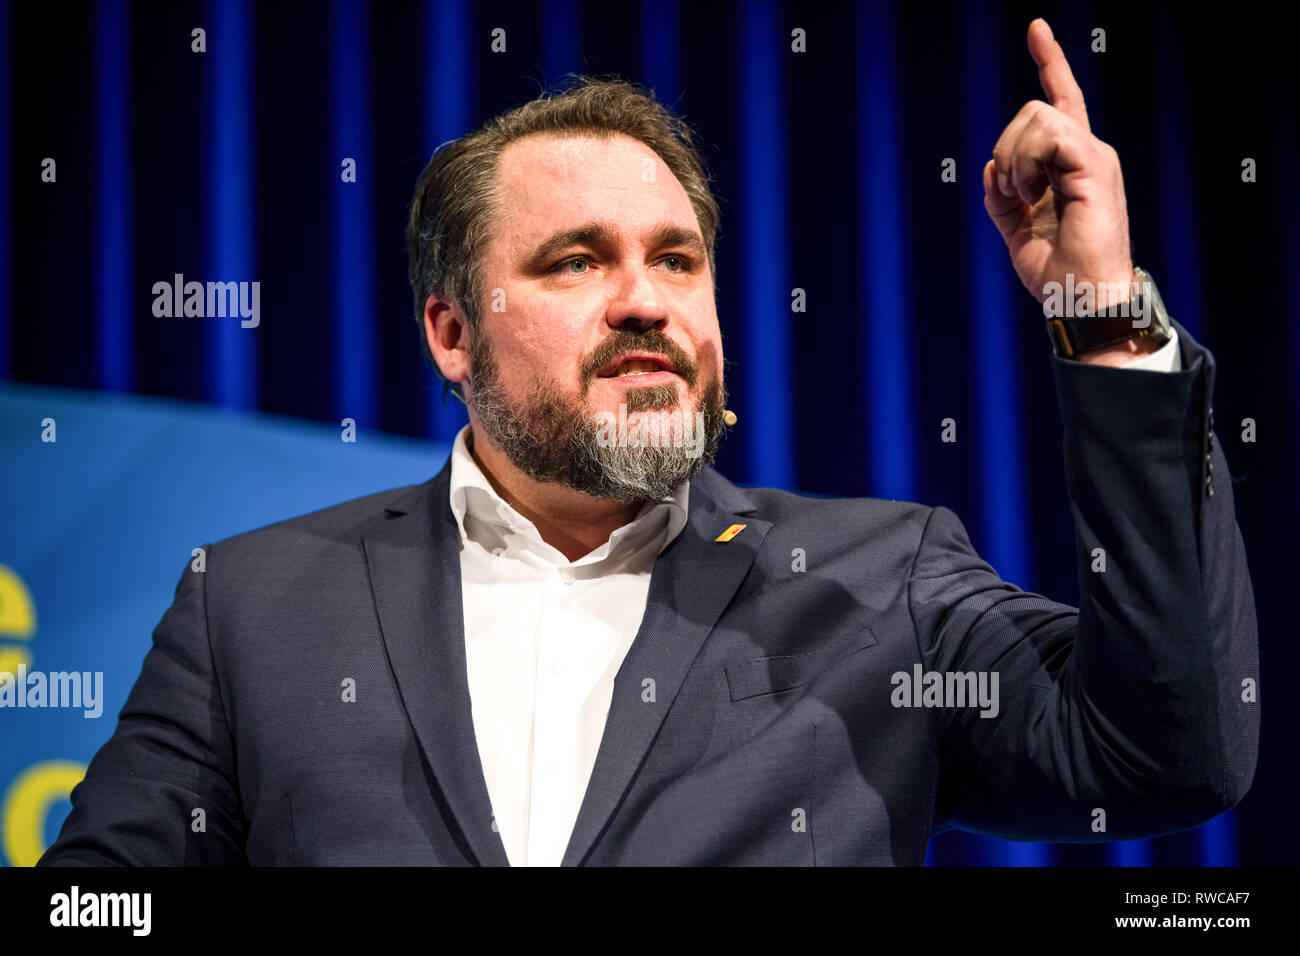 06 March 2019, Bavaria, Dingolfing: Daniel Föst, FDP Member of Parliament, speaks at the FDP Political Ash Wednesday. Photo: Sina Schuldt/dpa Stock Photo